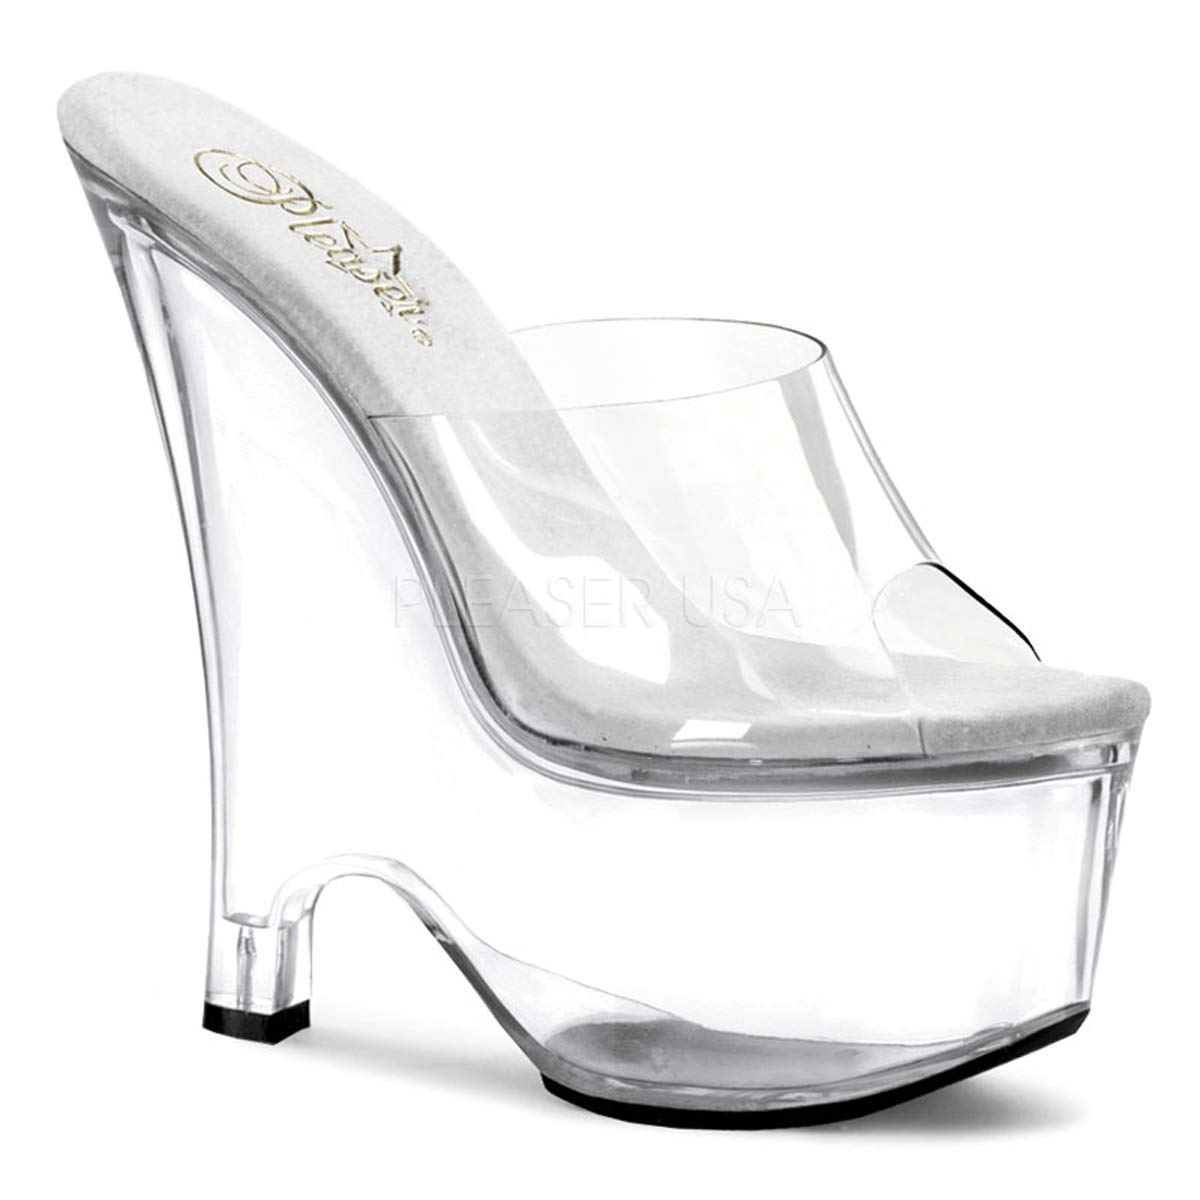 Pleaser Beau-601 Women's Wedge Heel Slip on 6.1/2'' Sexy Sandal. Clear/Clear Size 9